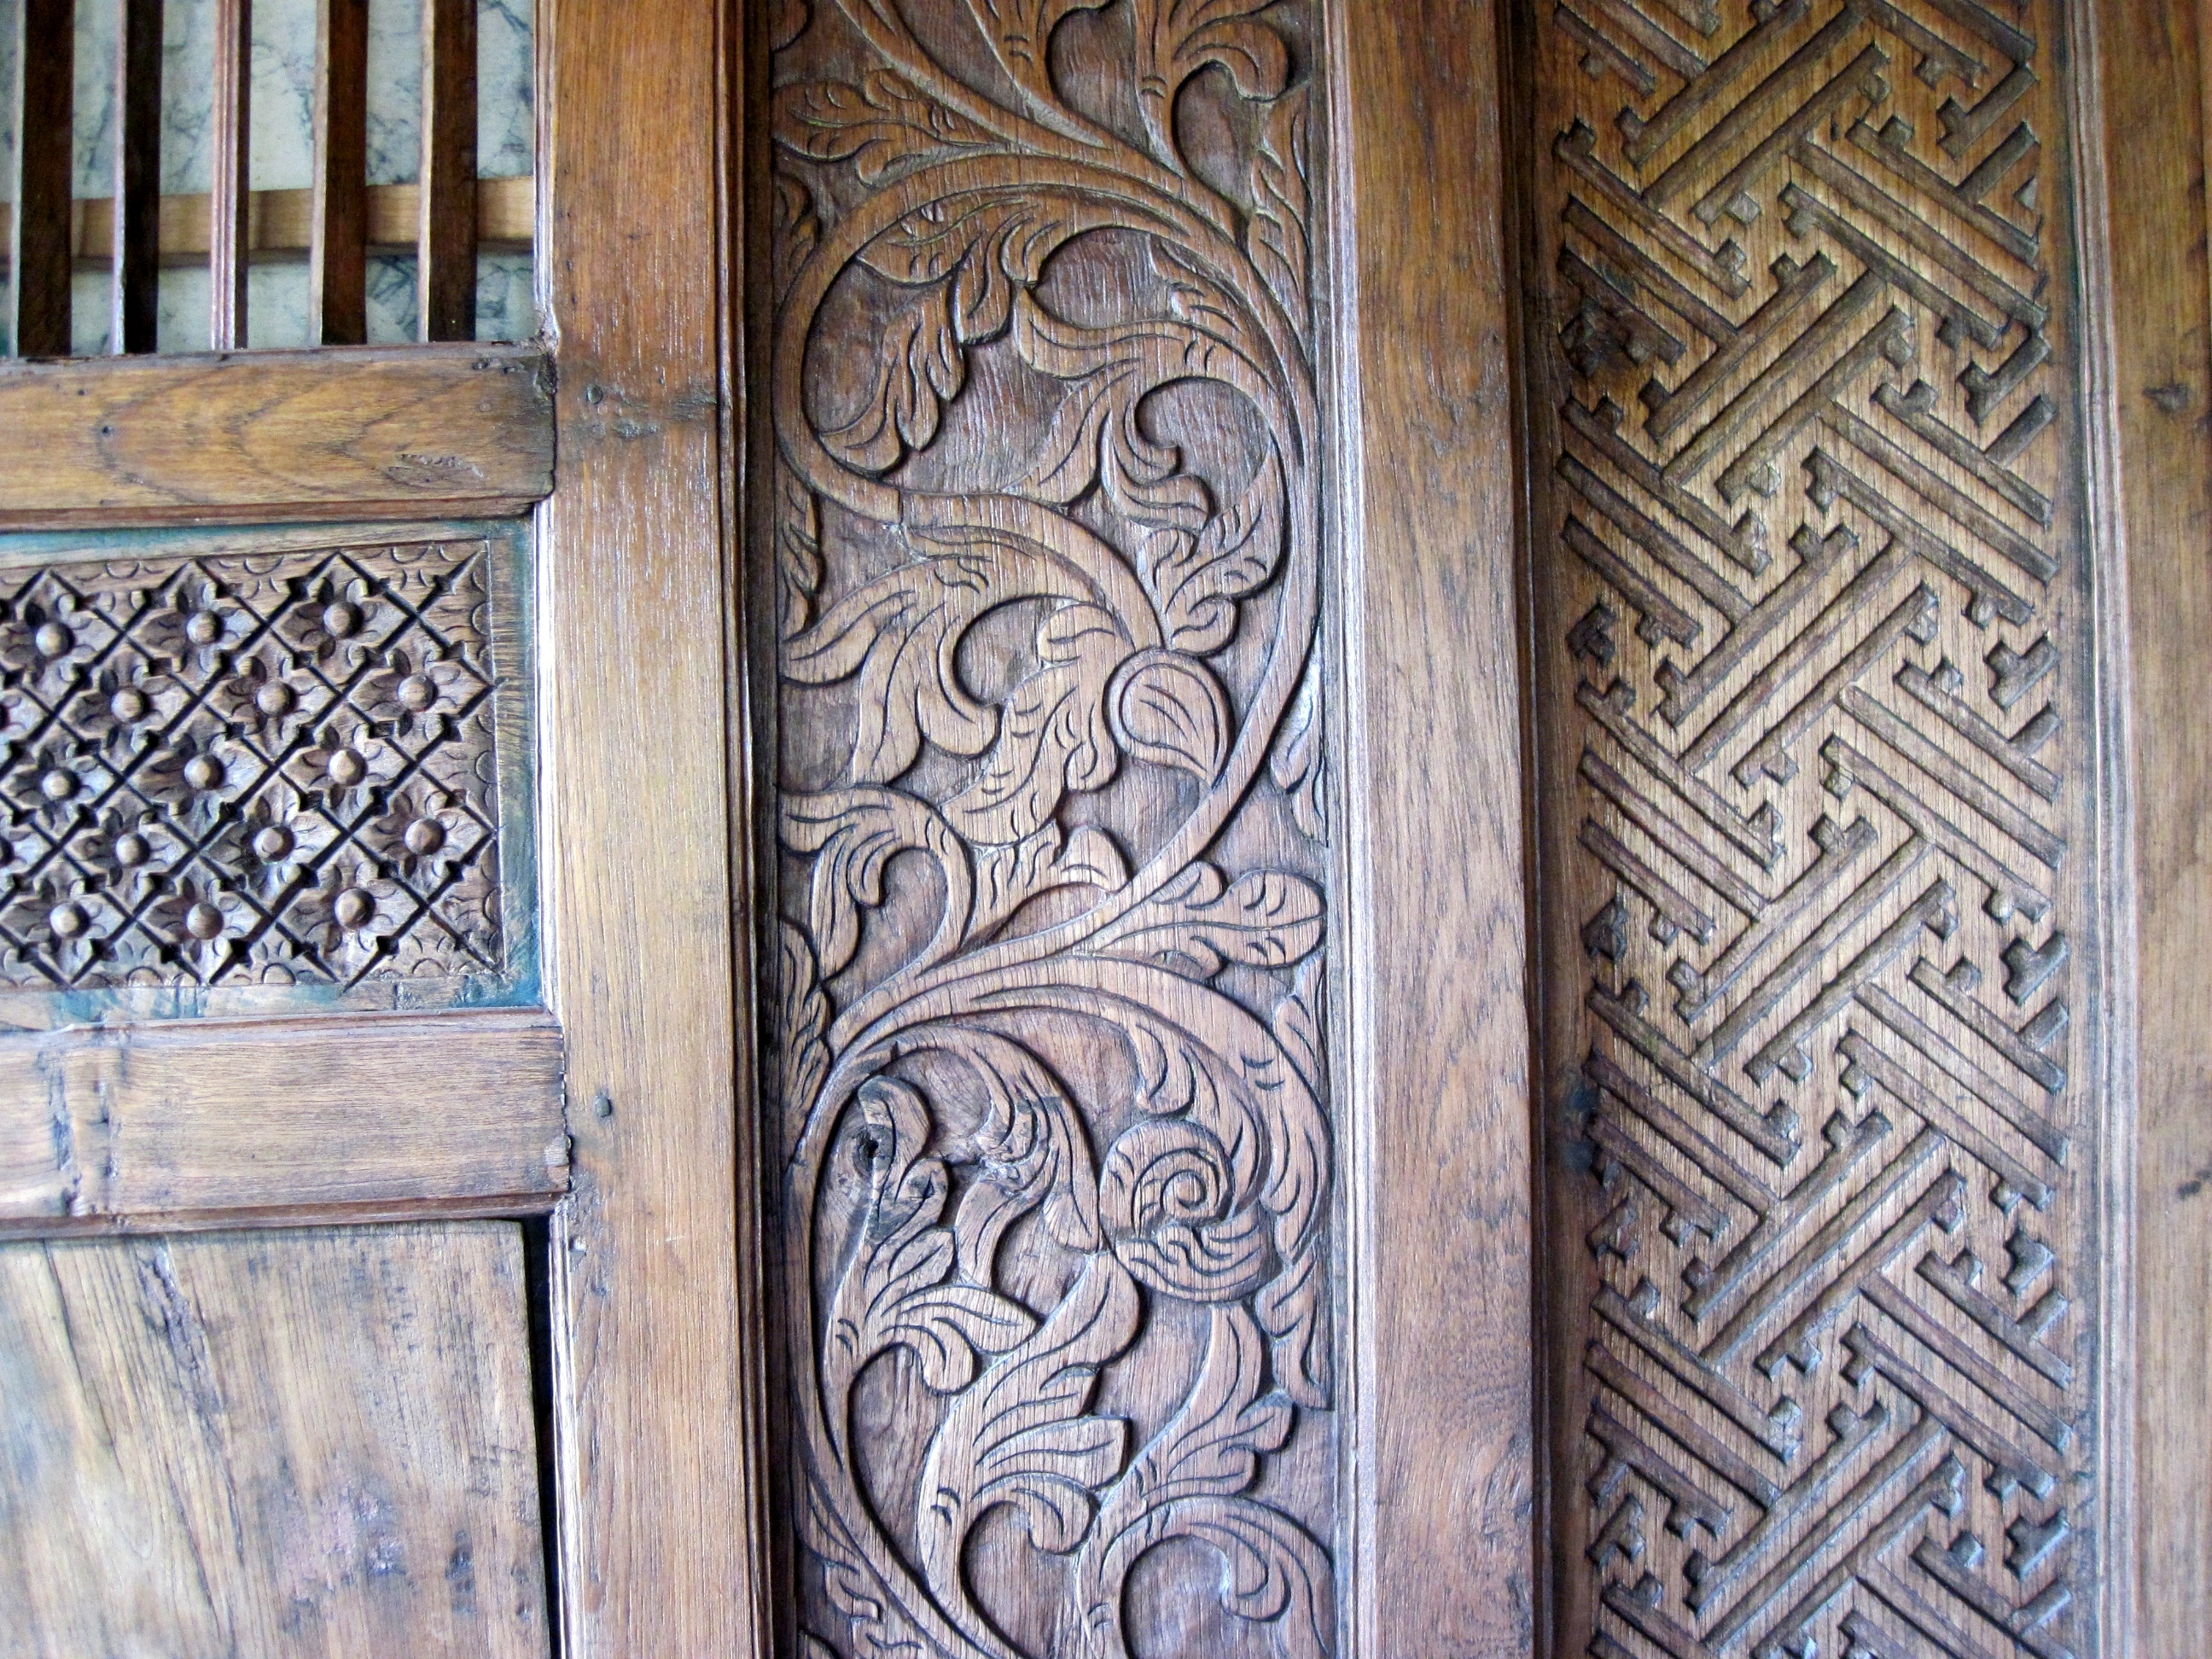 Trendy Wood Wall Art Carvings – Elitflat Intended For Wood Carved Wall Art (View 15 of 15)